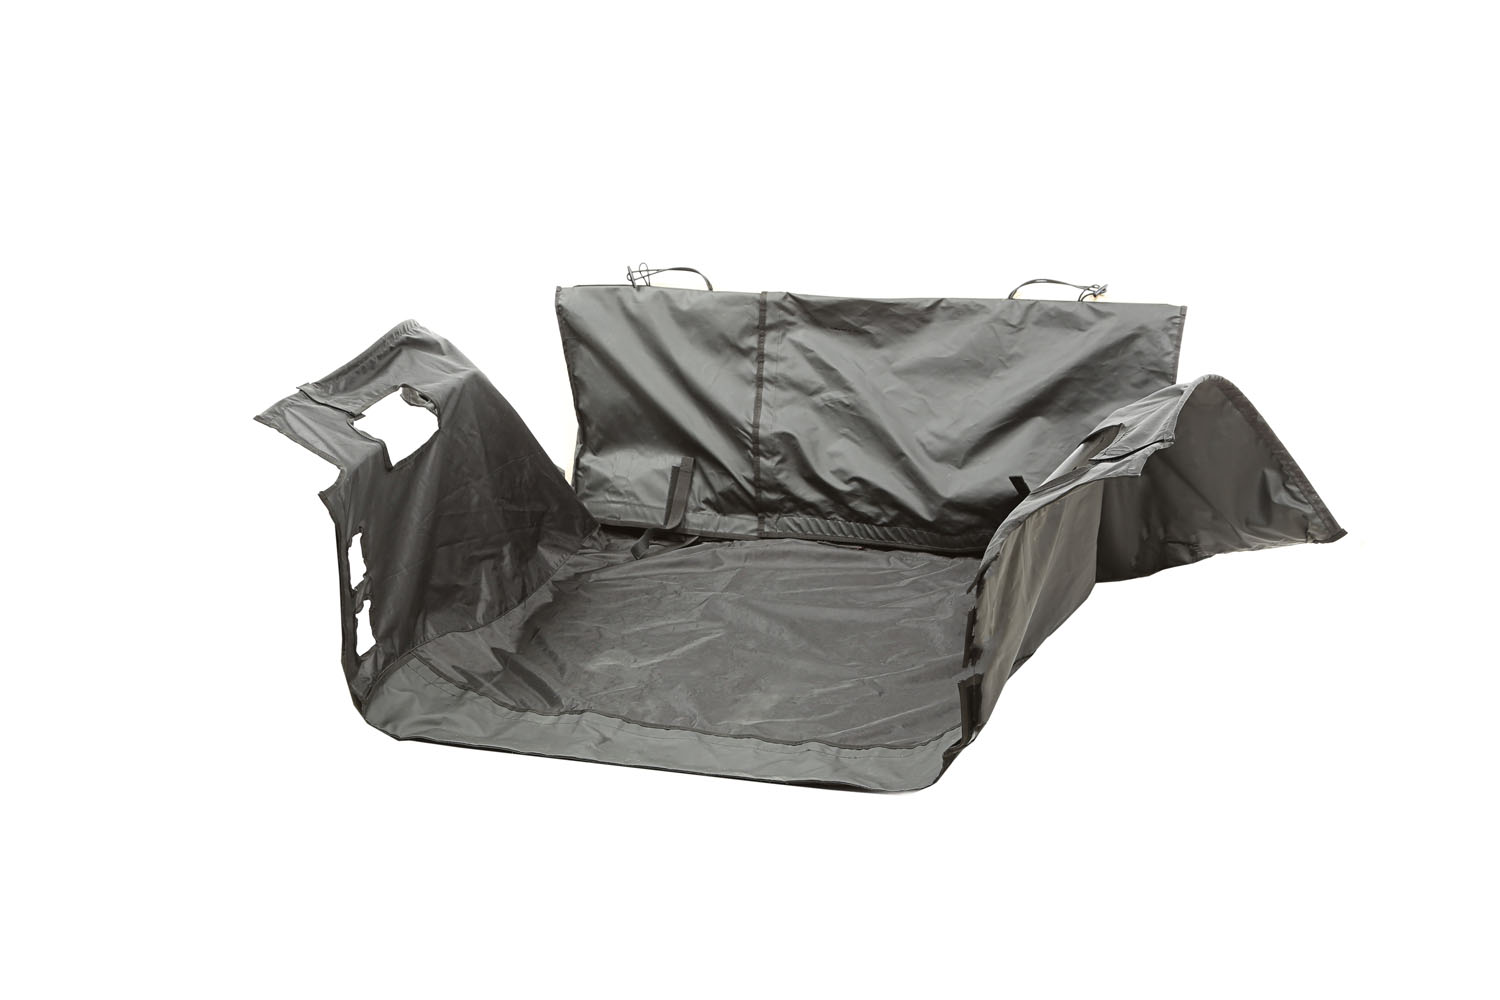 C3 Cargo Cover No Subwoofer 07-18 Jeep Wrangler JKU 4 Door Get FREE C3 tailgate Cover (13260.09) with JK C3 Cargo Cover